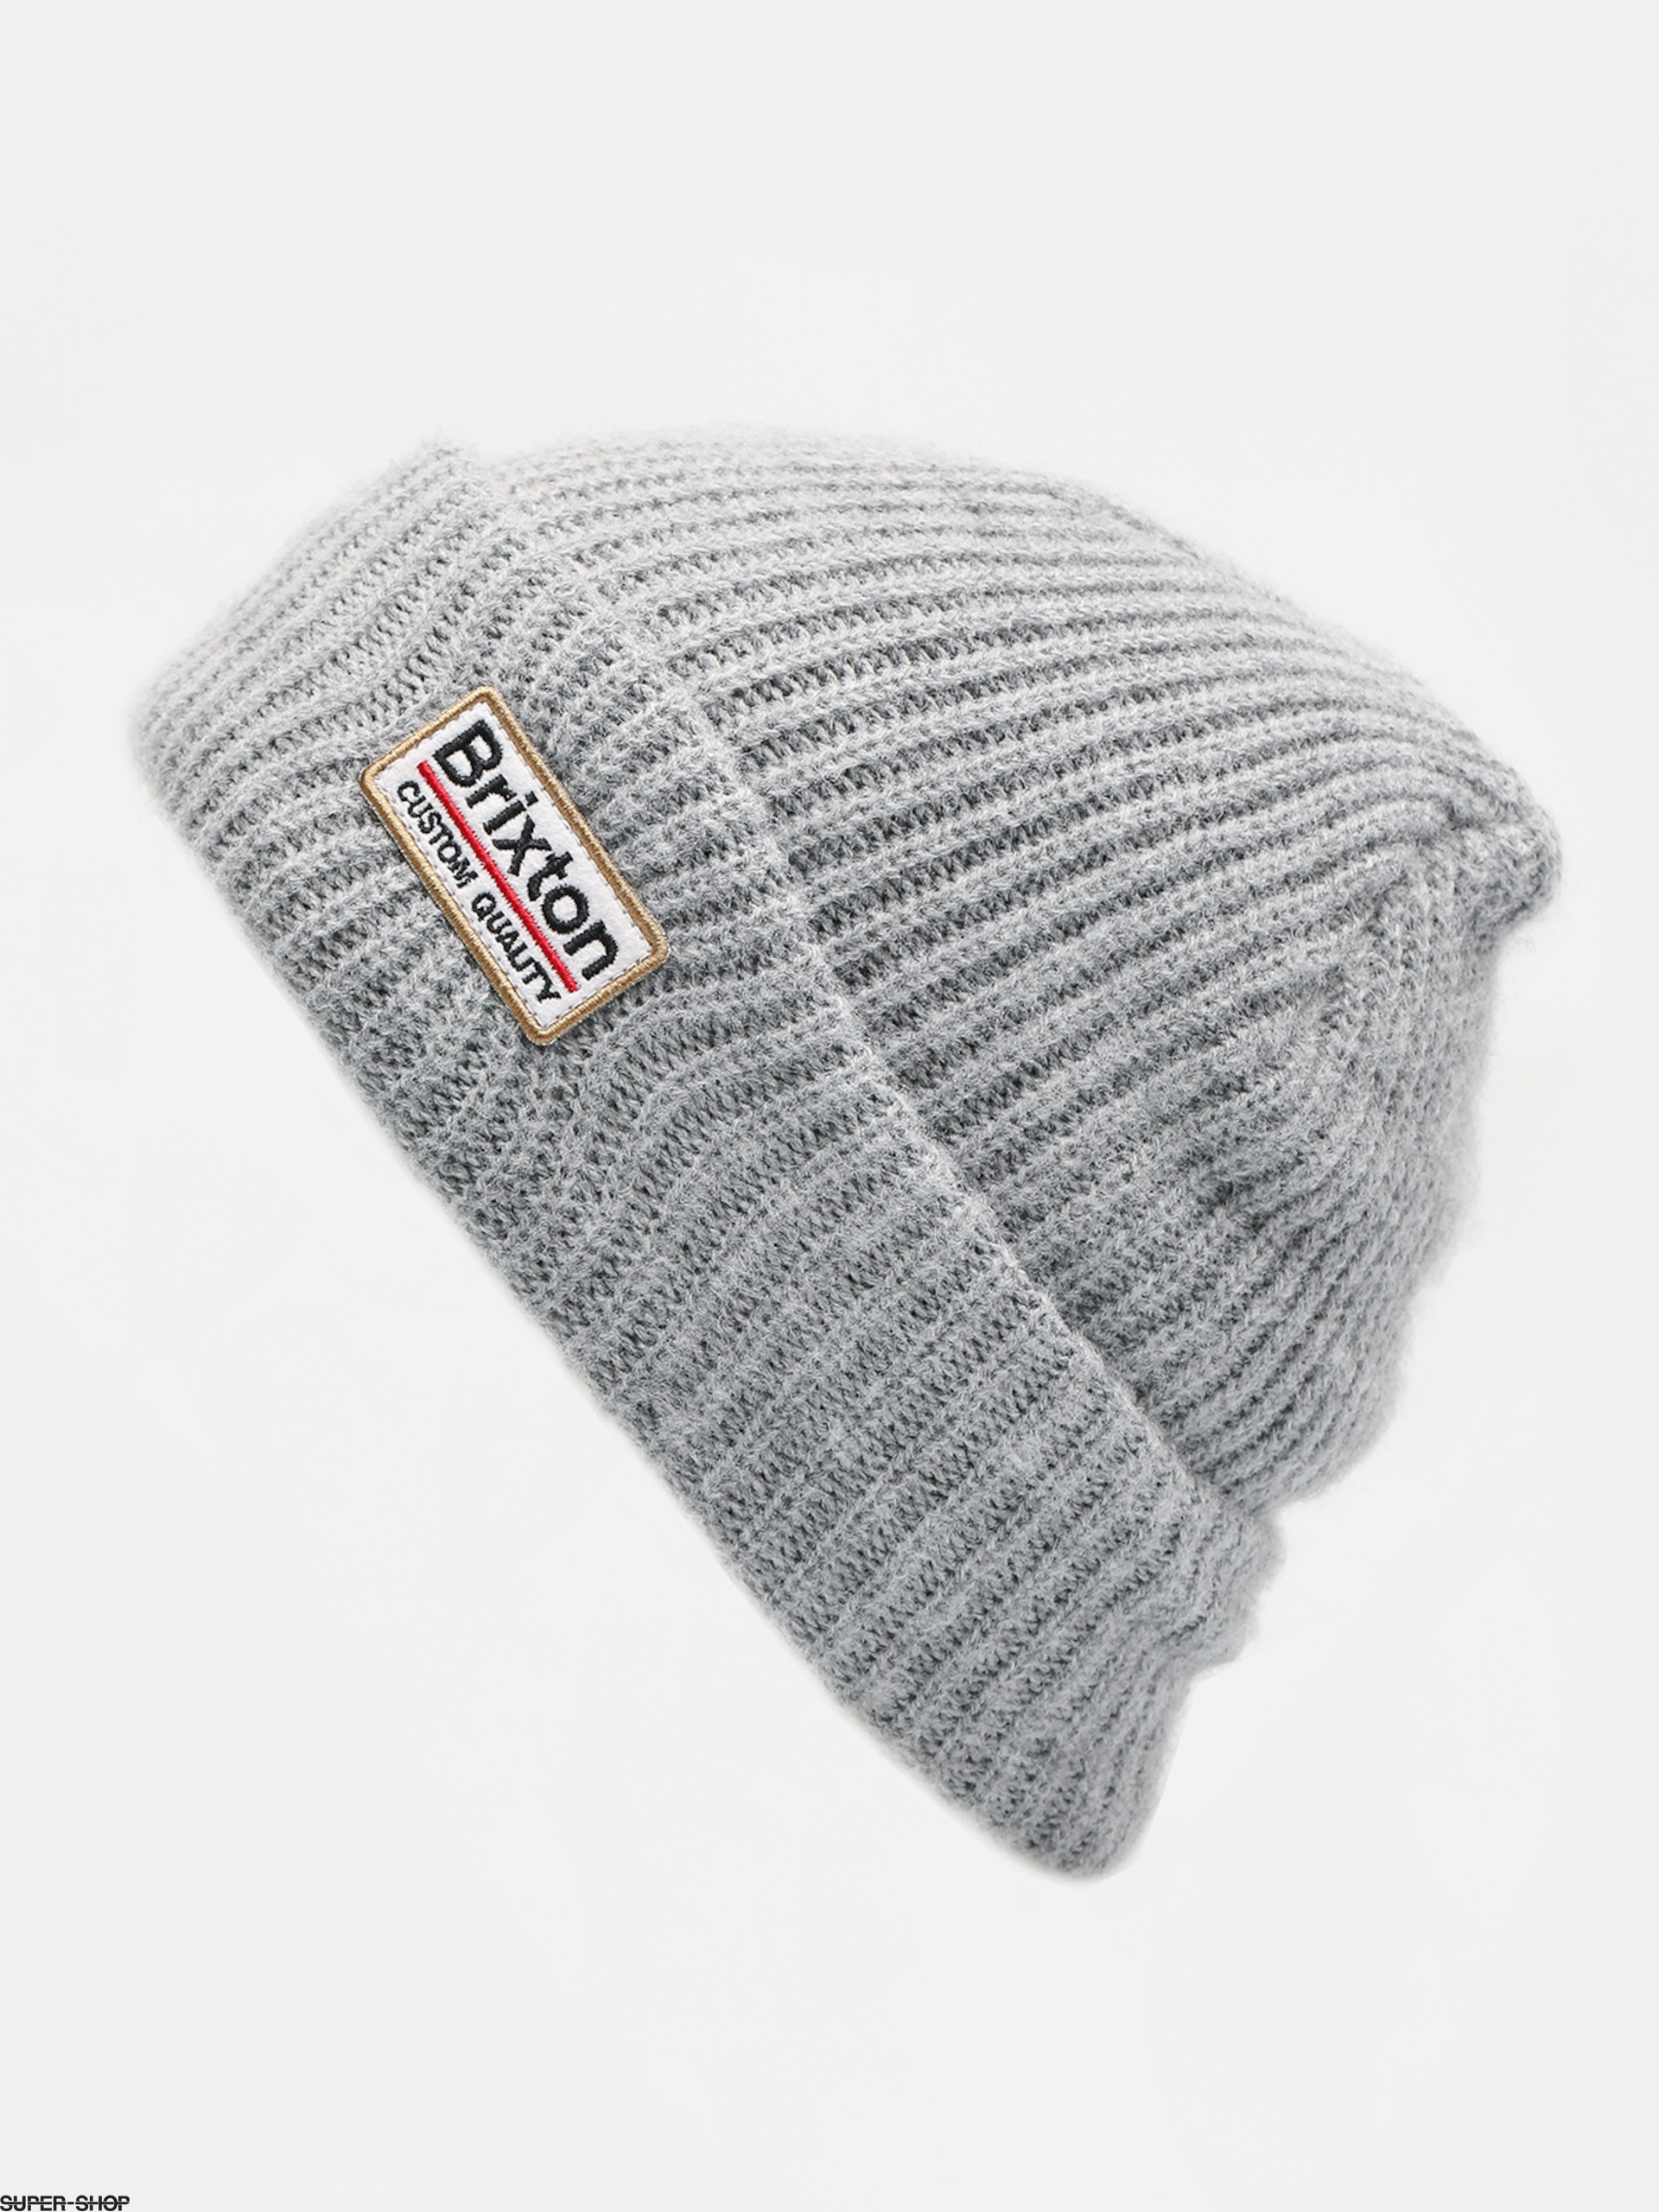 45d529c7bea 979496-w1920-brixton-beanie-palmer-ii-beanie-light-heather-grey.jpg